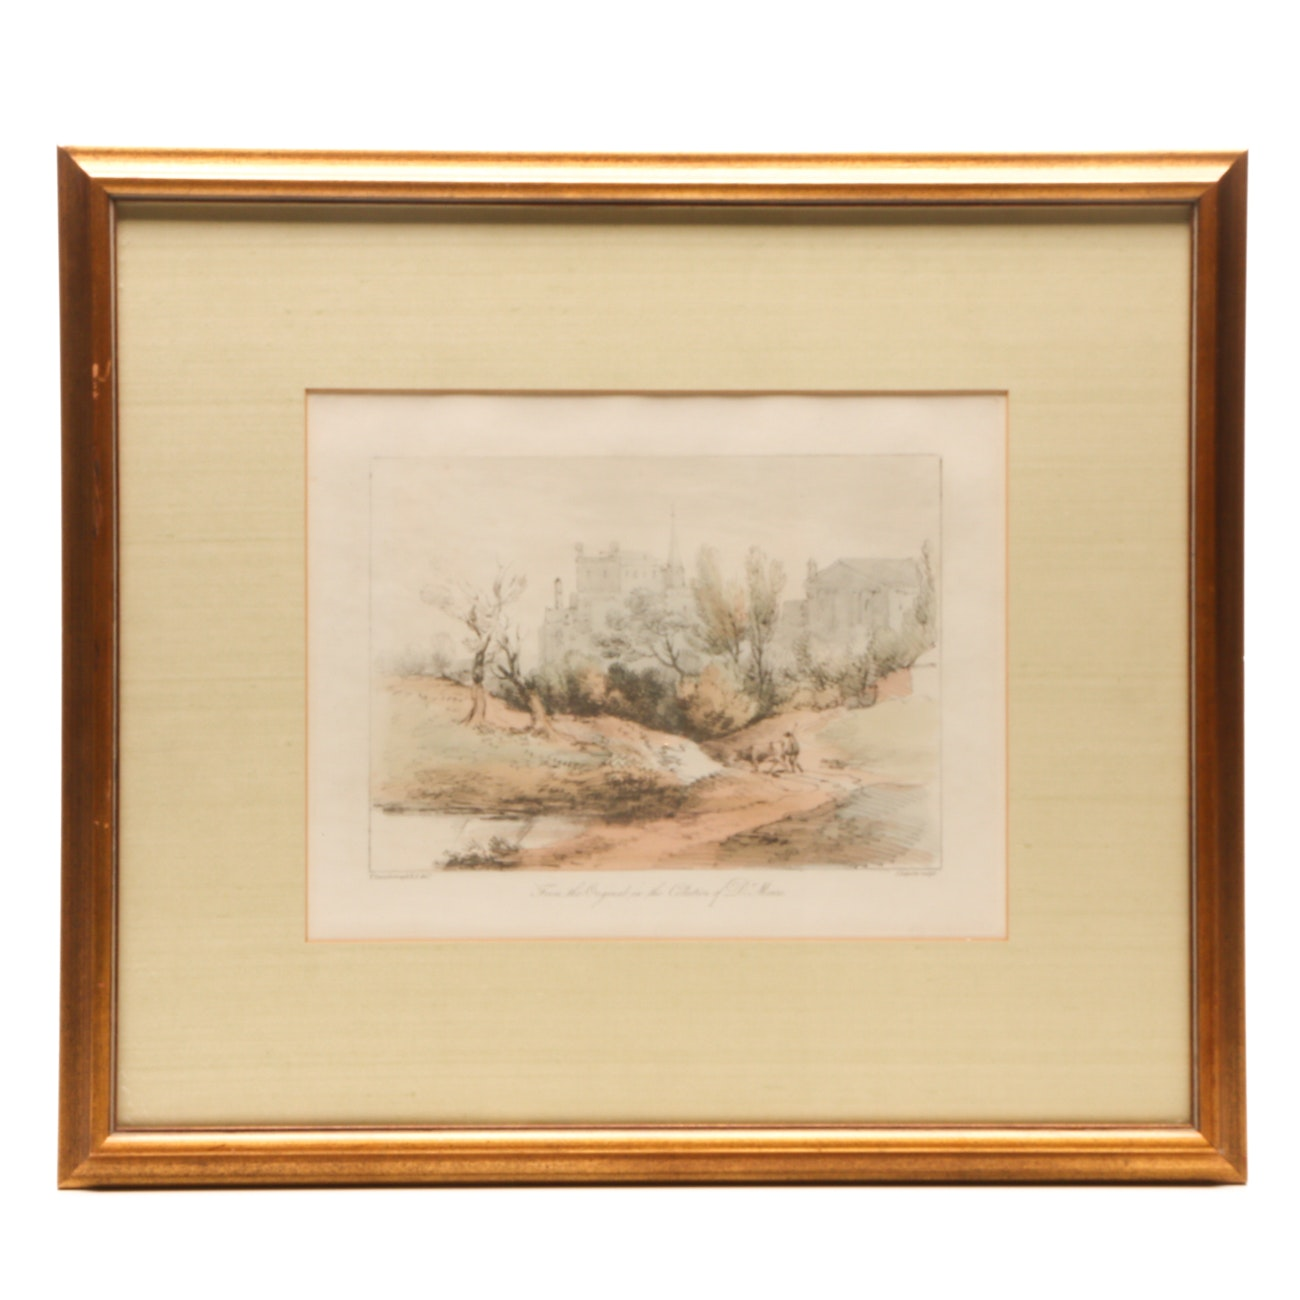 Hand-colored Lithograph after Thomas Gainsborough Pastoral Scene